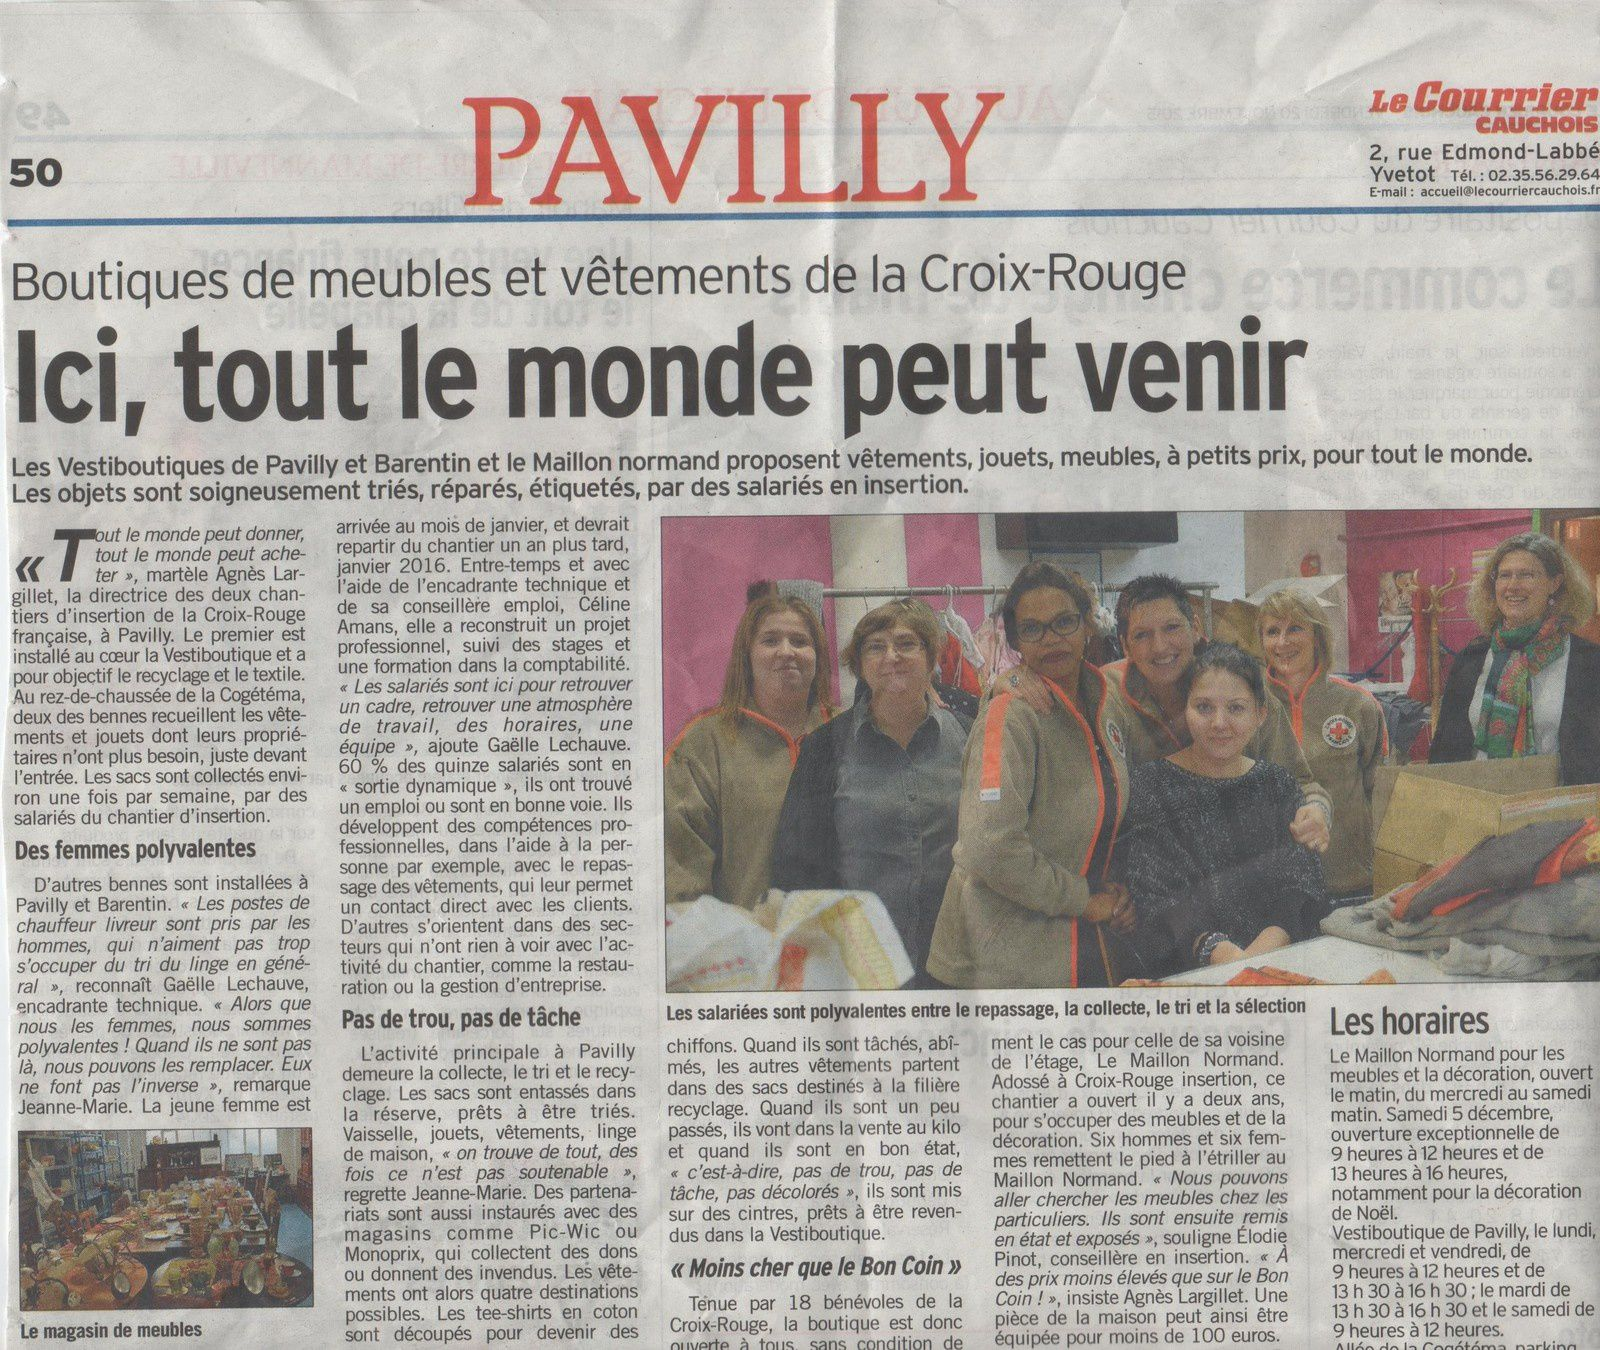 article du Courrier Cauchoix du 20/11/15